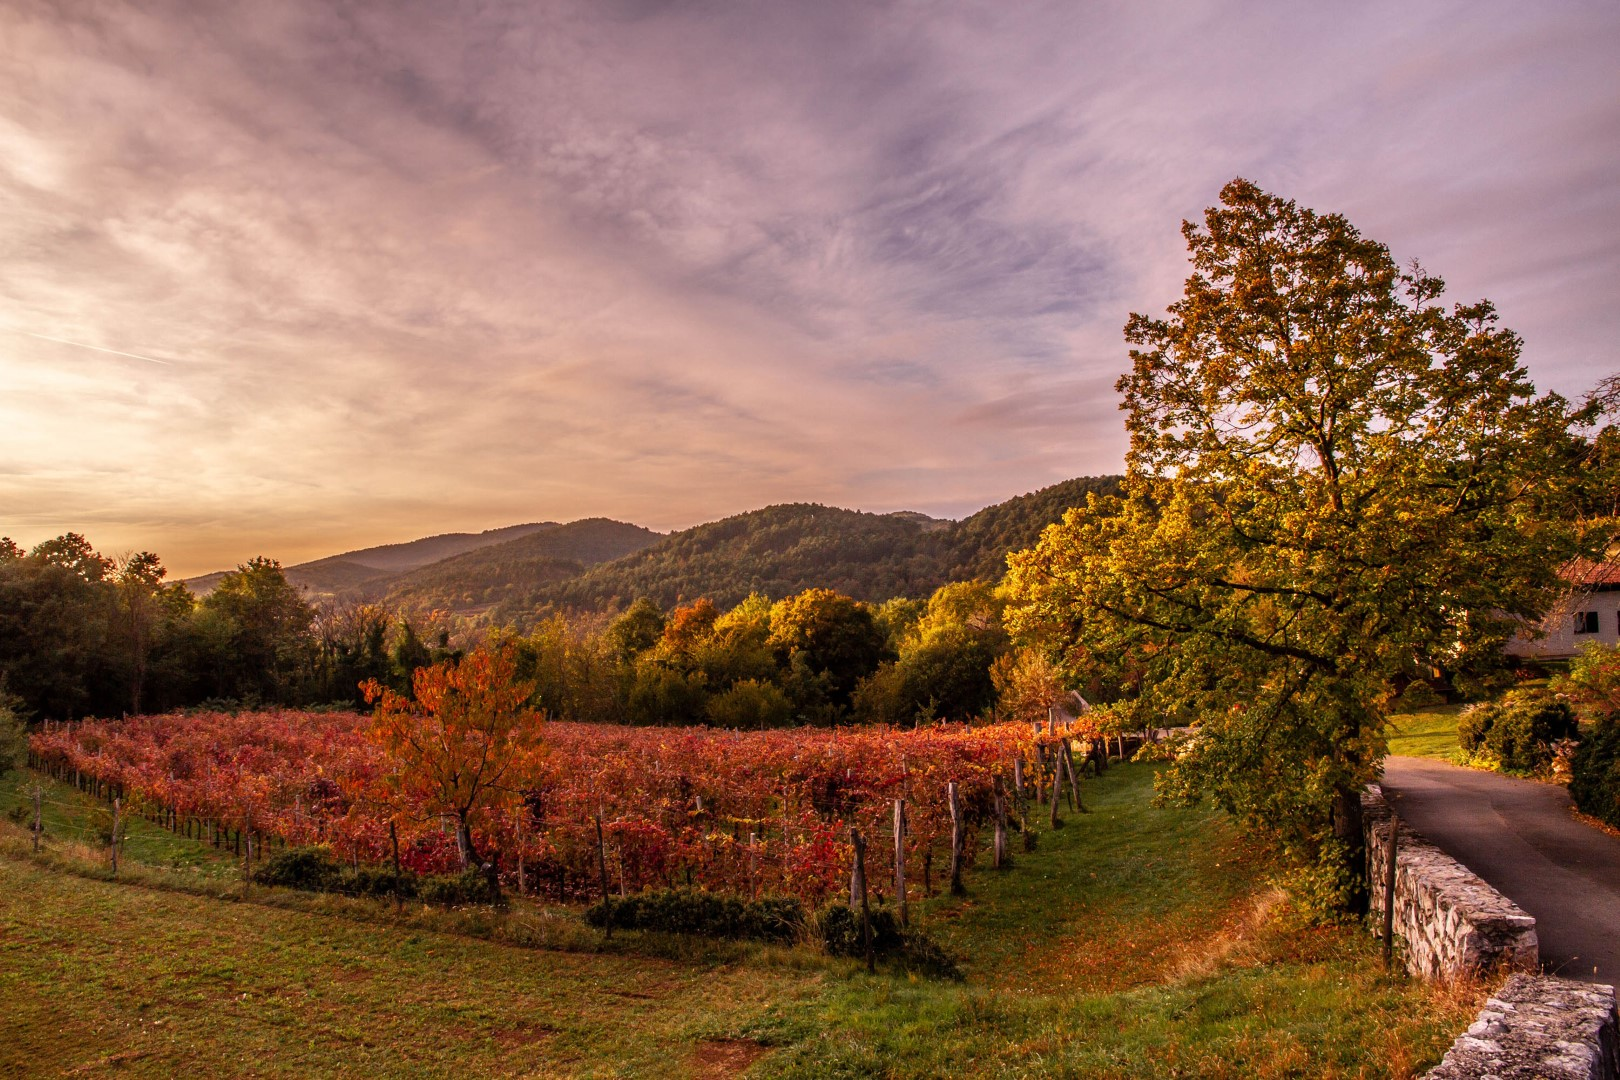 Vineyards in autumn on the Karst plateau